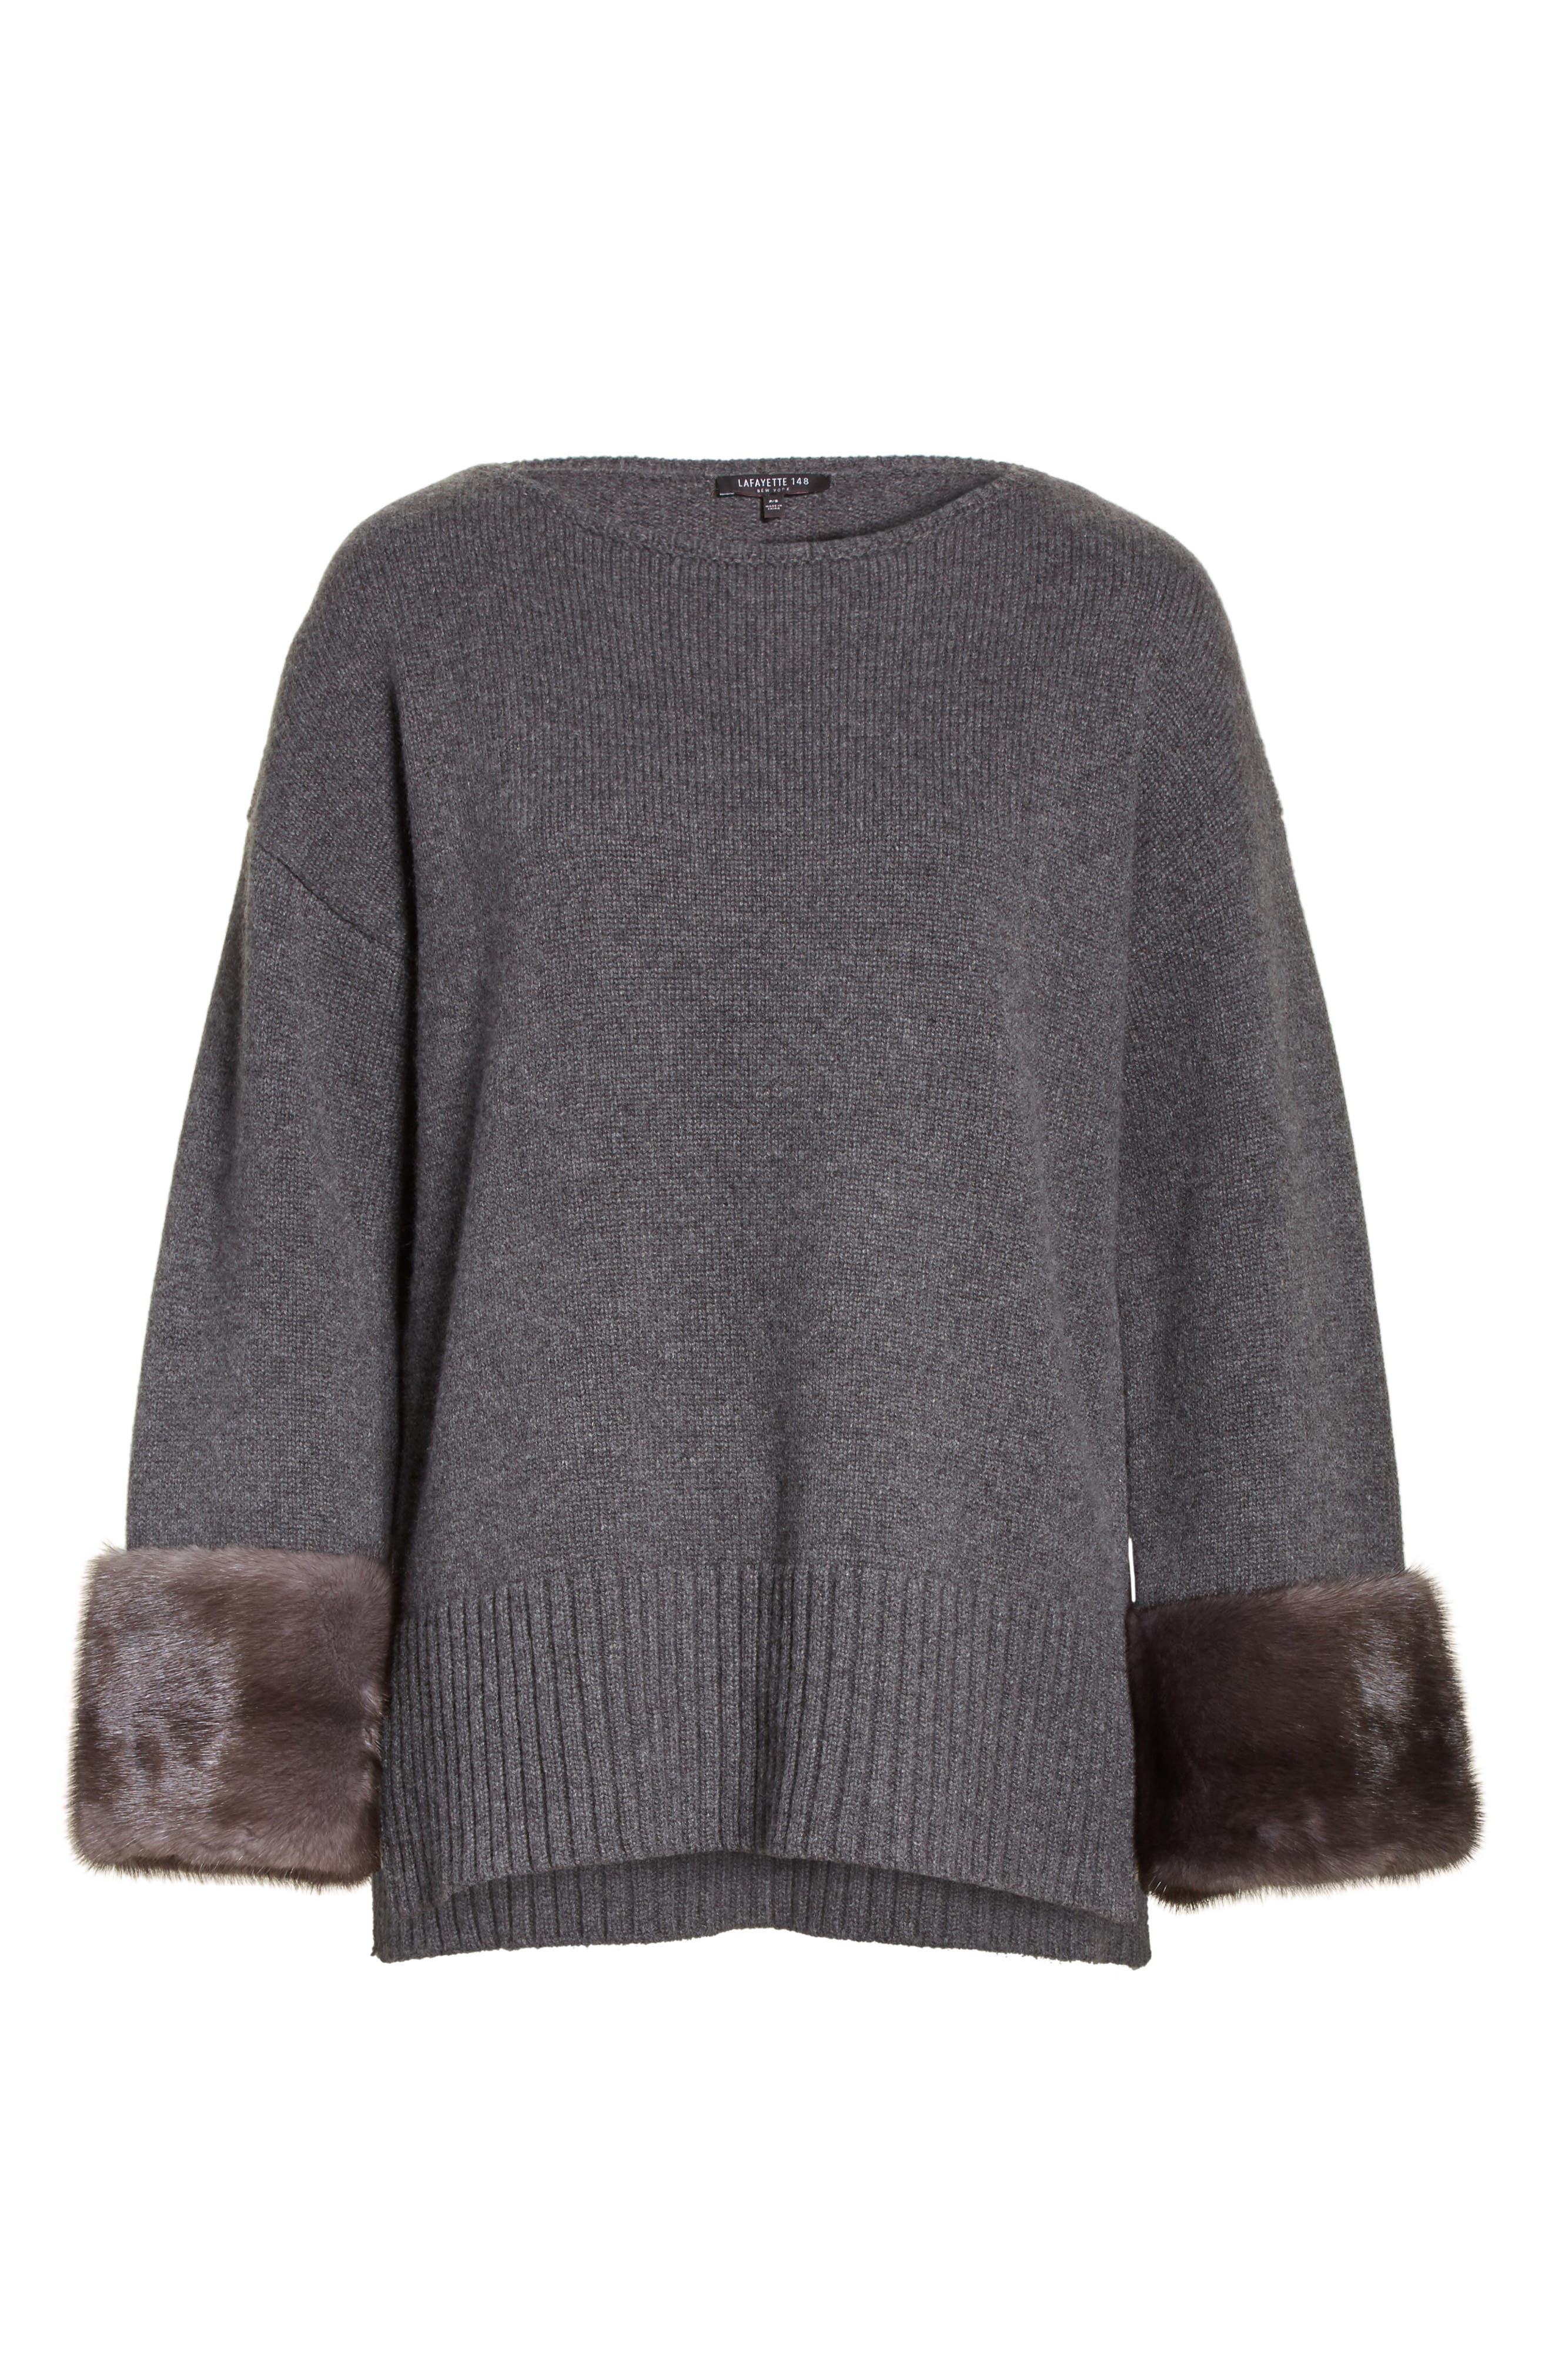 Cashmere Sweater with Genuine Mink Fur Cuffs,                             Alternate thumbnail 6, color,                             020